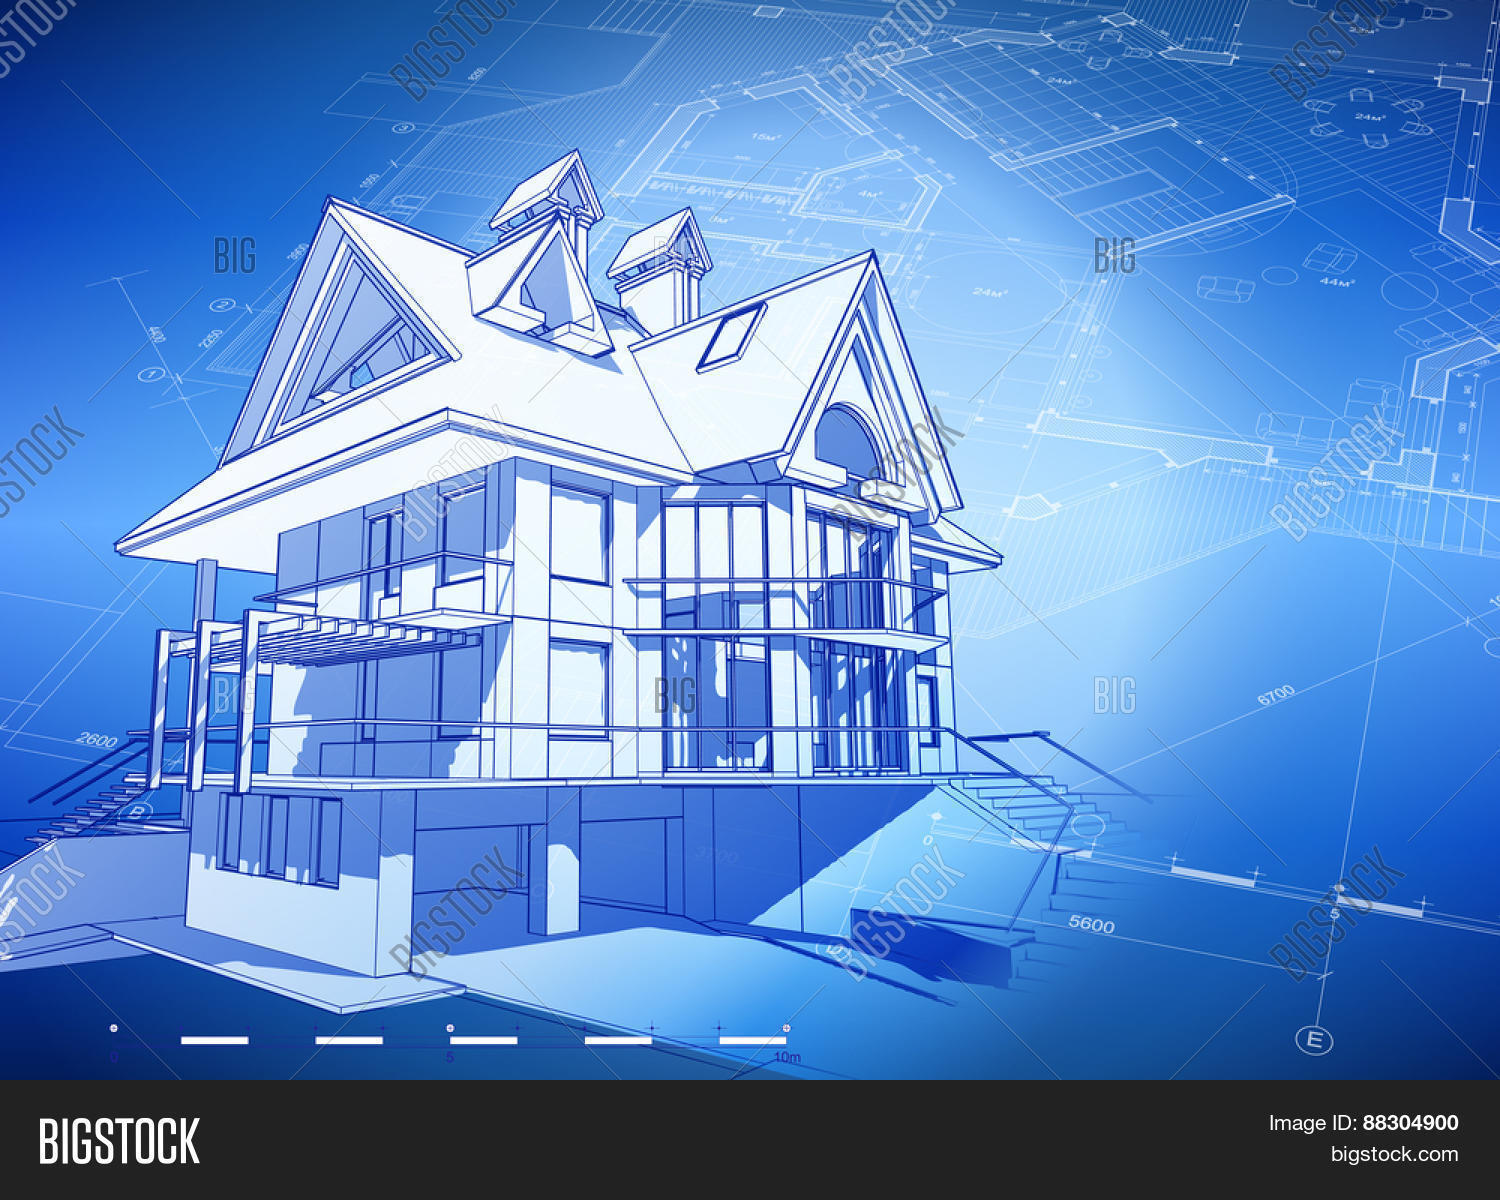 Architecture design blueprint 3d vector photo bigstock for 3d wallpaper of house